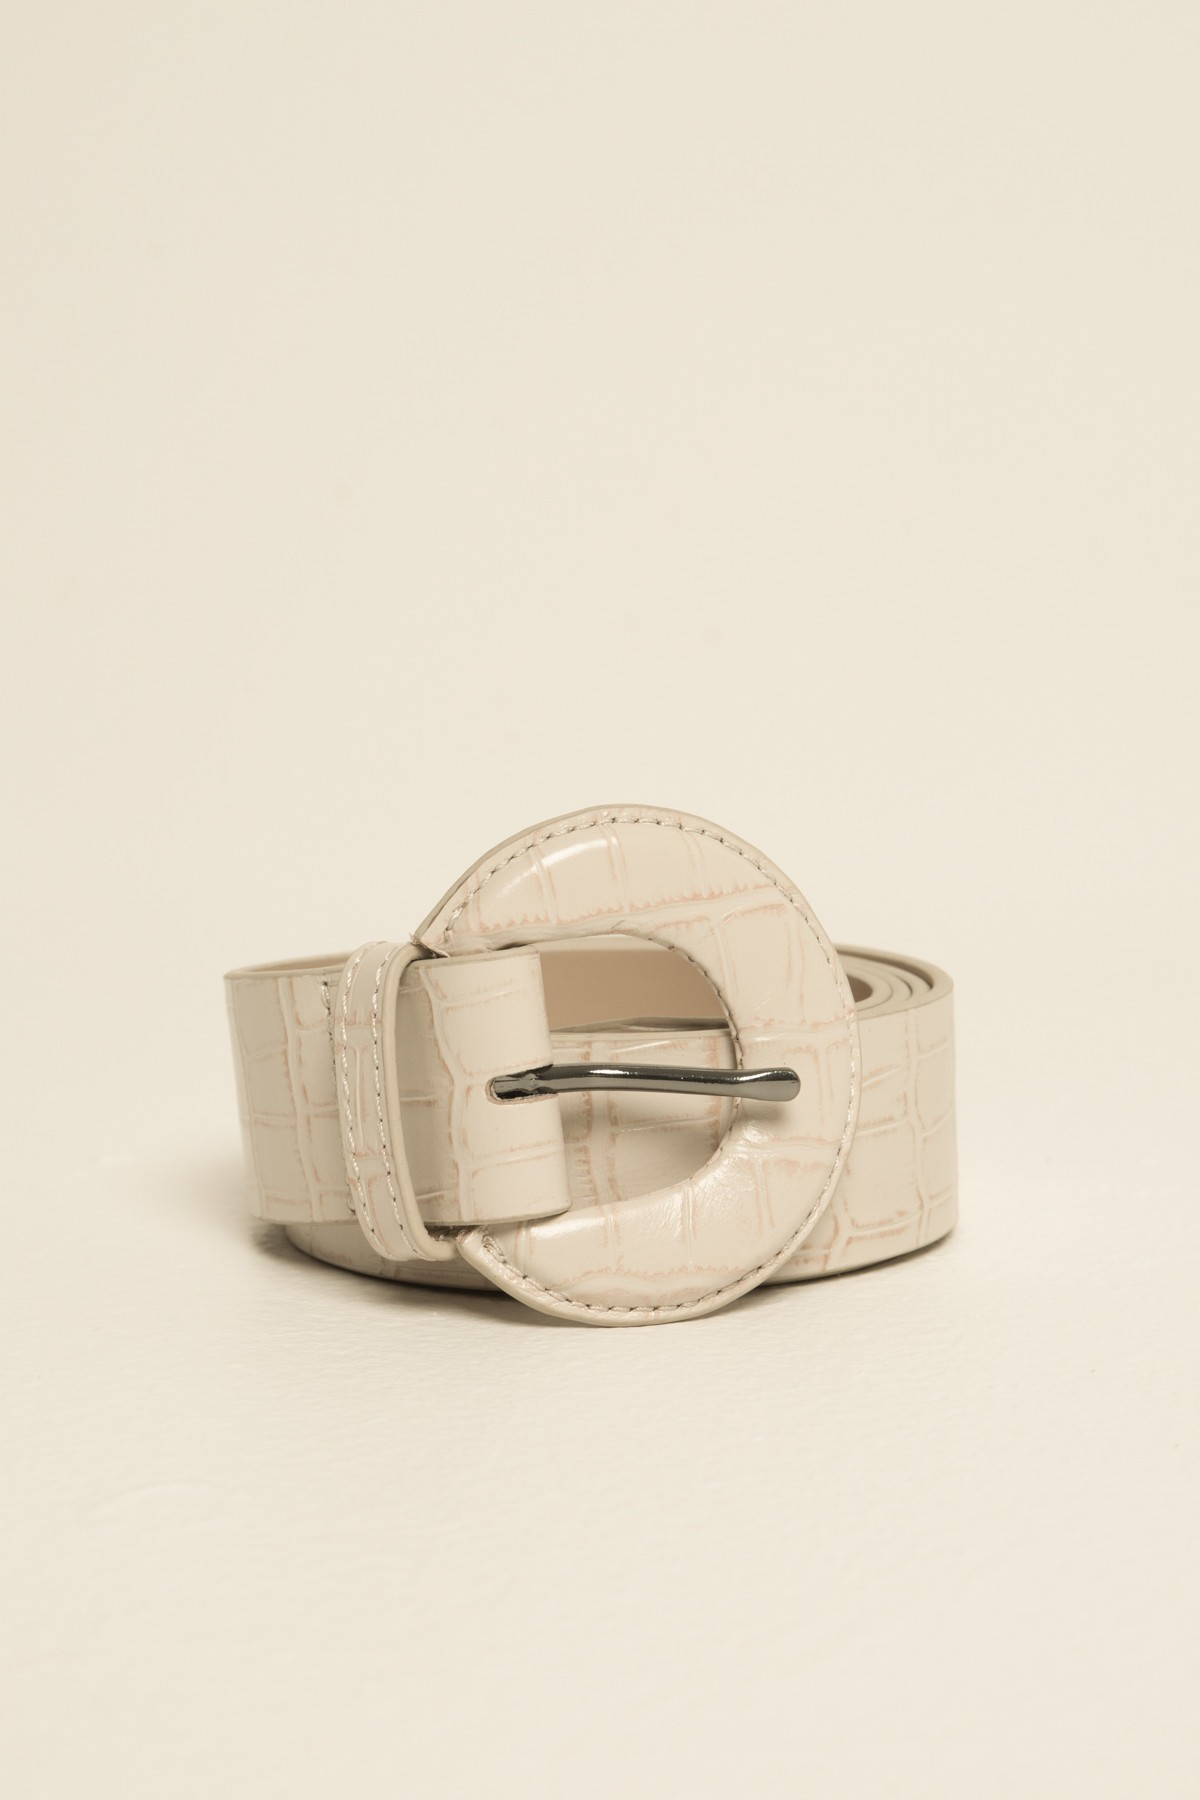 Shop JAGGAR The Label Buckle Belt in crocodile cream leather.